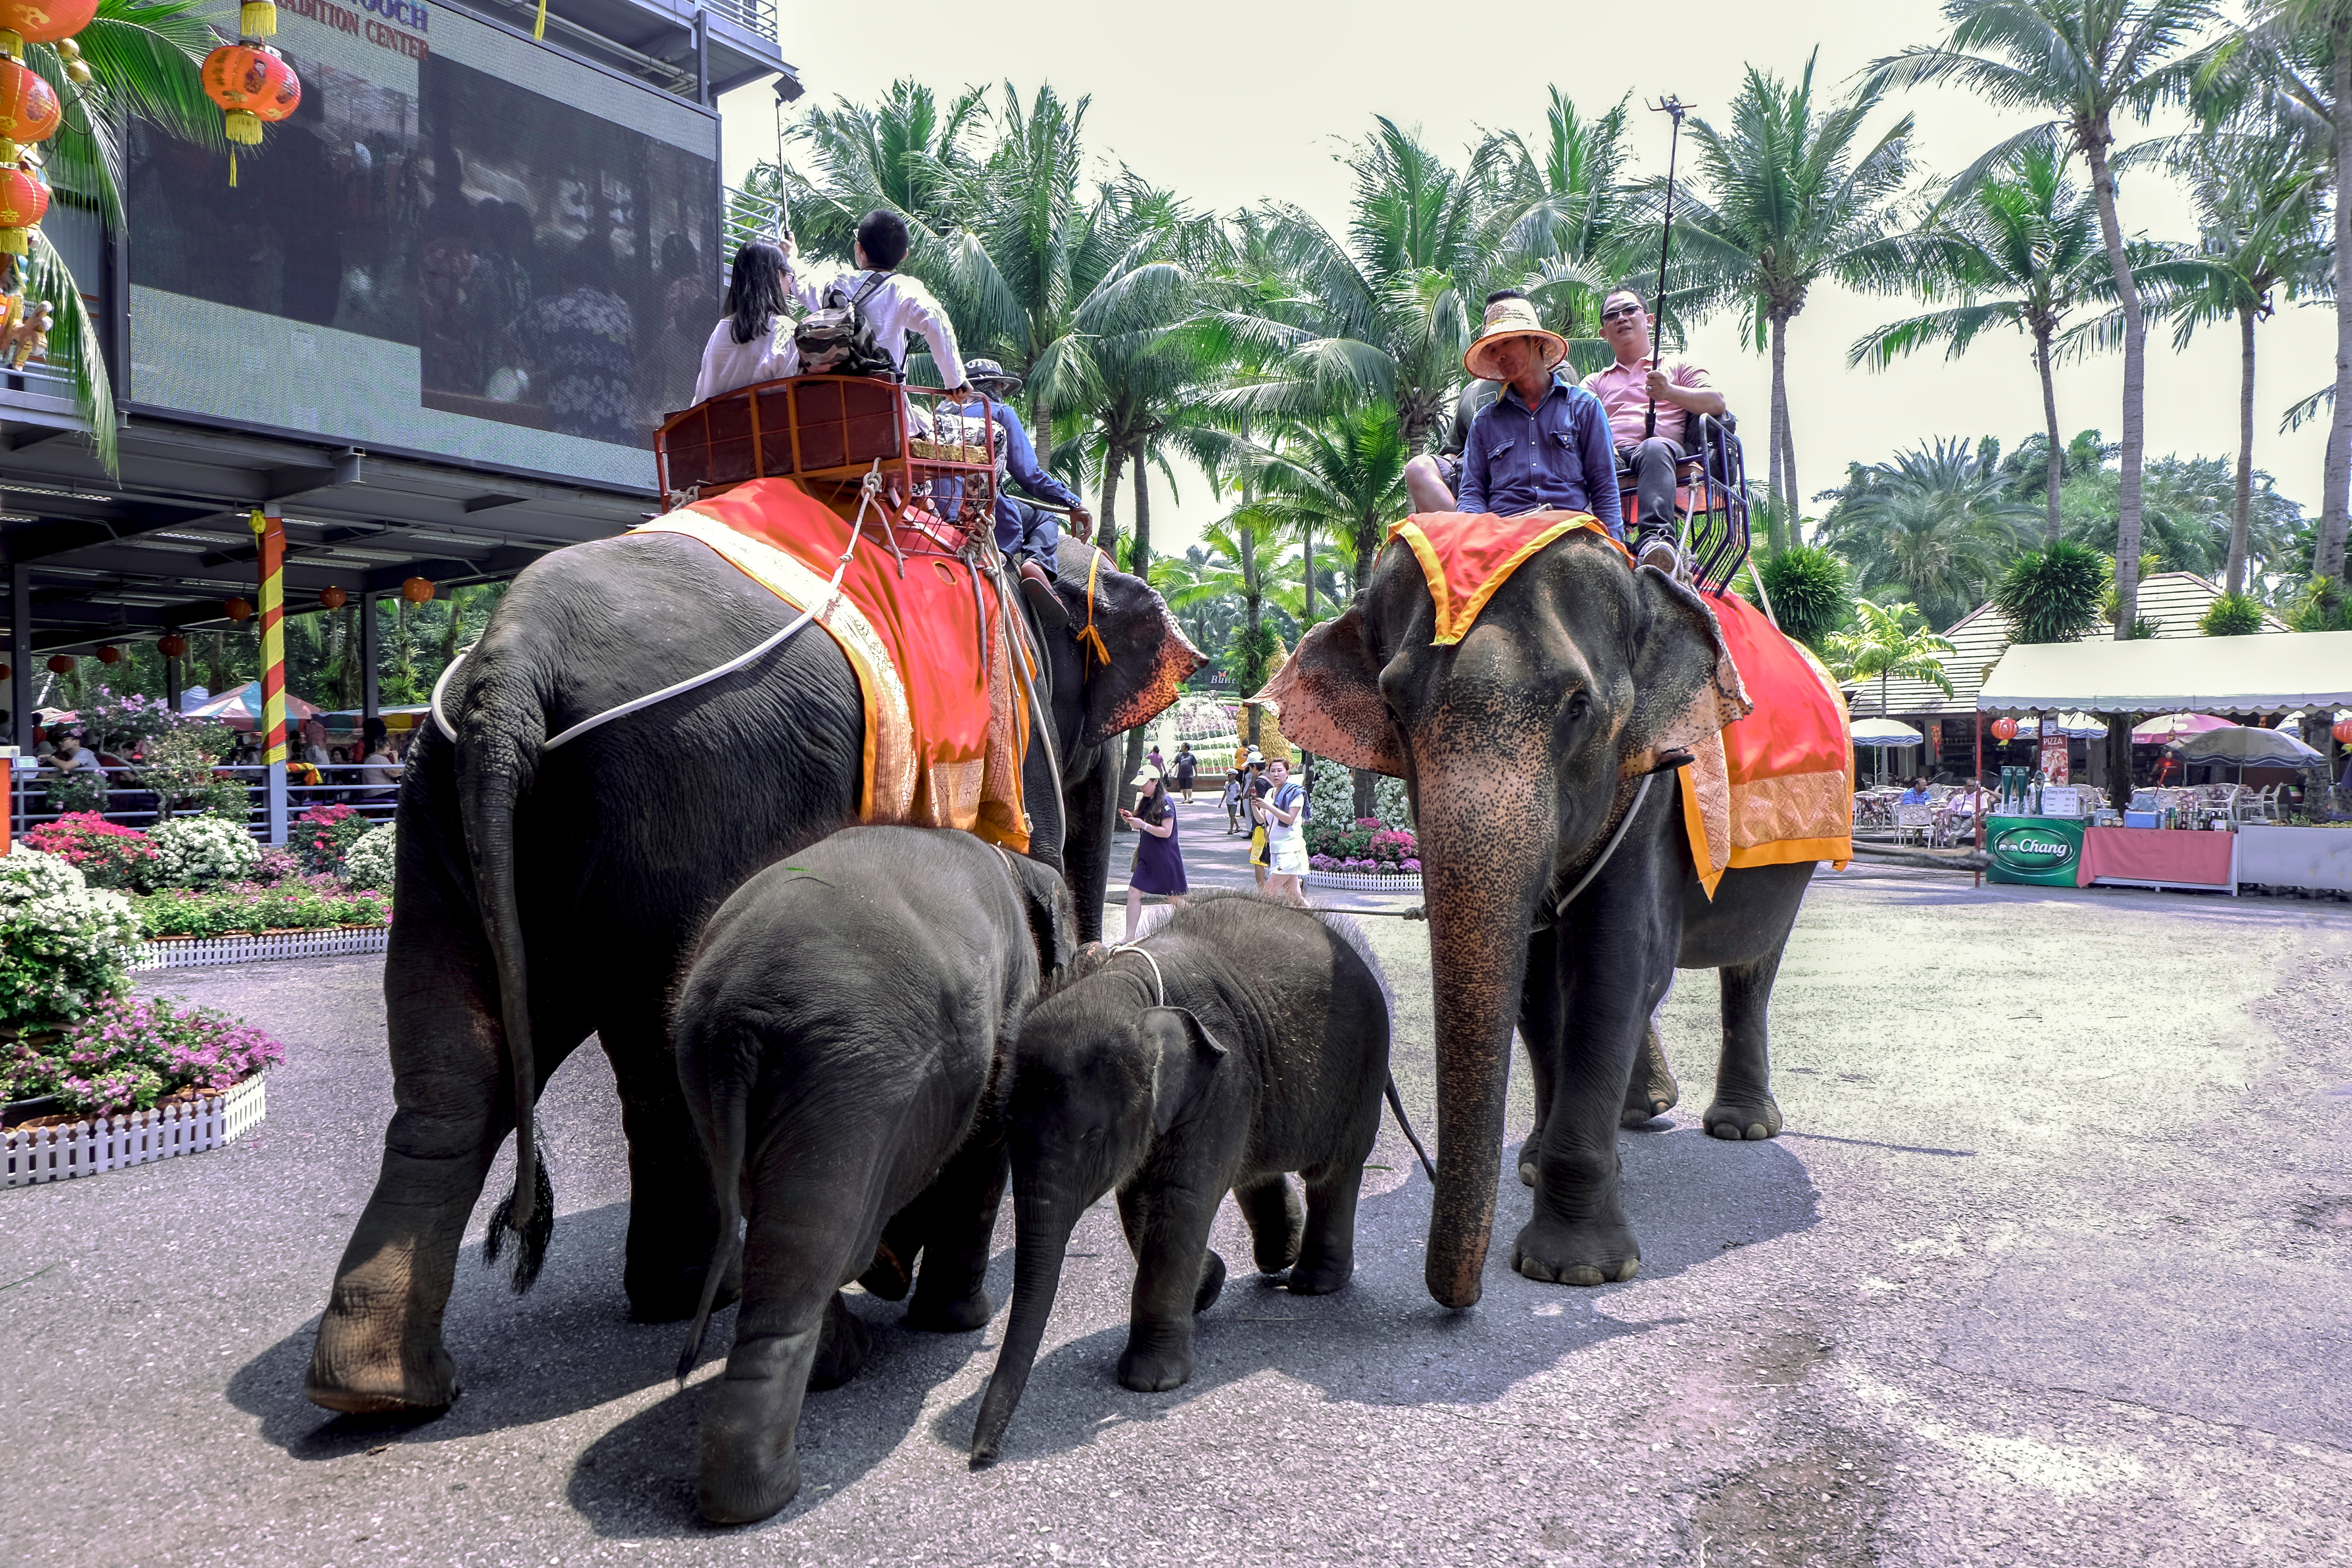 Baby elephants tied to their mothers giving rides to tourists